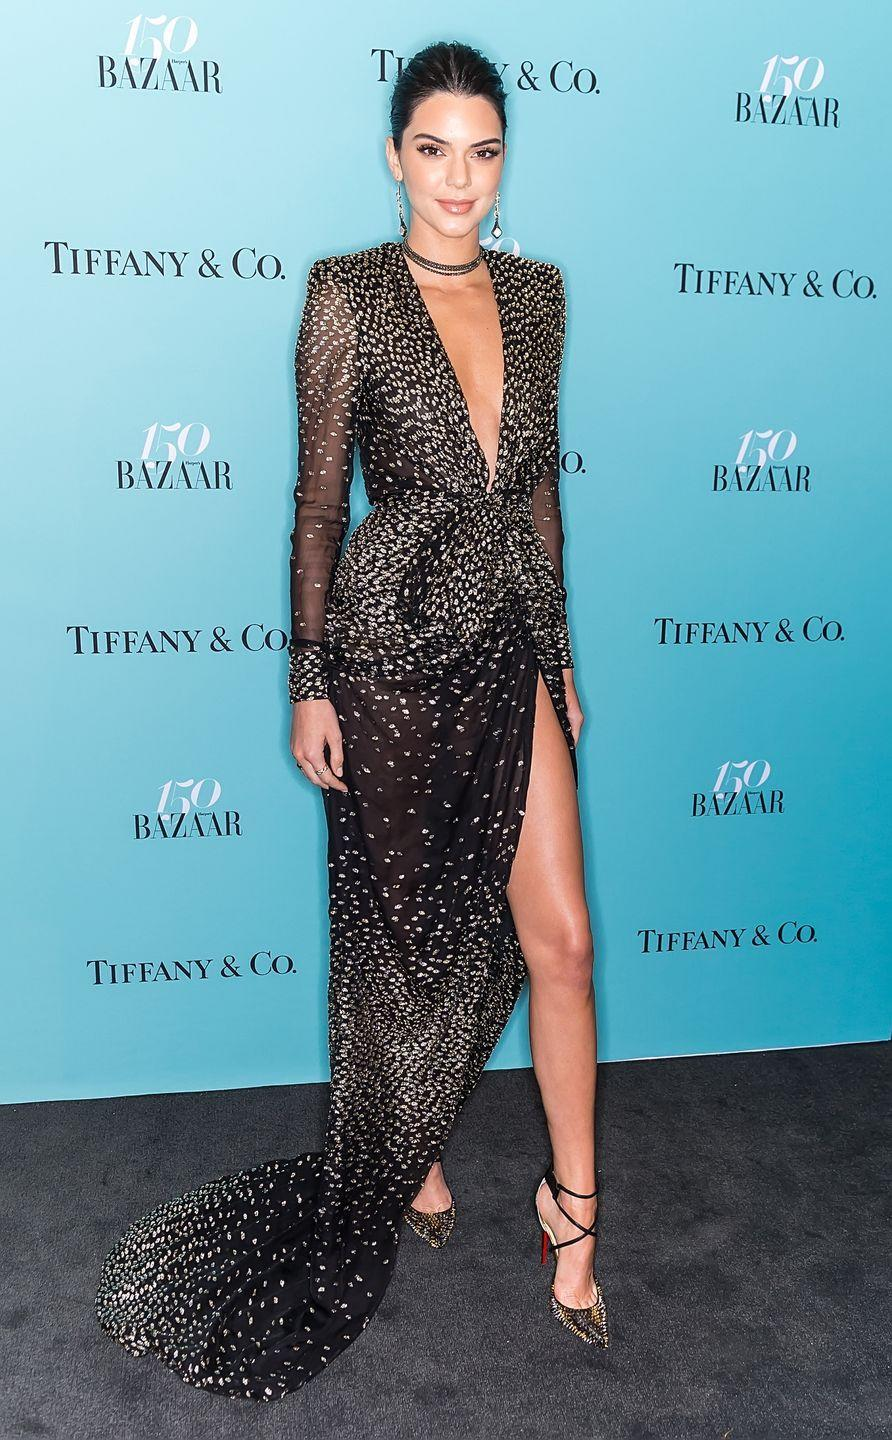 <p>Kendall Jenner wears a plunging gown by Redemption at Harper's BAZAAR 150th Anniversary Event</p>